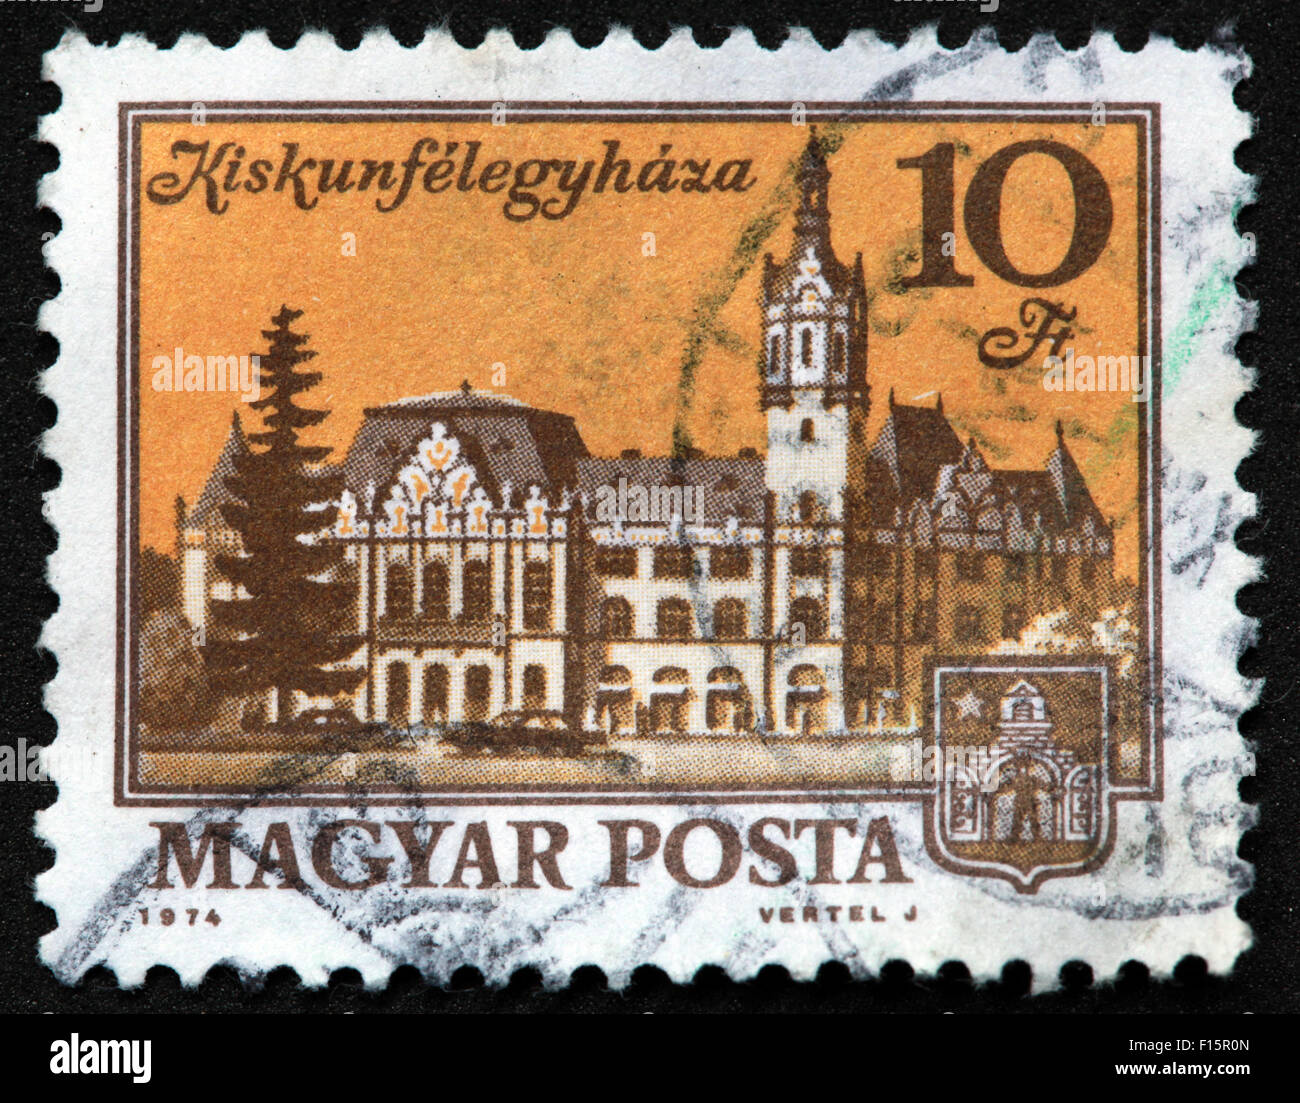 International Post,star,Used and Postmarked,Used,and,postmarked,perforated,stamp,Used,and,postmarked,Stamp,post,posting,mail,hobby,perforation,mark,postage,stamp,print,stamp,cancelled,stamp,payment,correspondence,postman,collection,collector,phila,USSR,Soviet,Bloc,Block,East,Eastern,Europe,Hungary,castle house Stamp,Hungarian,Gotonysmith,post,posting,mail,hobby,perforation,mark,postage,stamp,print,stamp,cancelled,canceled,stamp,payment,correspondence,postman,collection,collector,philately,philatelist,letter,price,history,retro,Australian,Vintage,delivery,date,relationship,communication,Oz,Australia,DownUnder,classic rare unique Austrailian financial,investment,invest,value,British,empire,nation,canceled,printed on black background,close-up,closeup,close,up,sent,send,philately,mailing,shipping,postoffice,office,isolated,circa,special,colour,color,postmarked,marked,airmail,aged,antique,retro,cutting,historic,old,stamps,collection,stamp collection,album,Timbre,Sello,Stempel,Selo,Buy Pictures of,Buy Images Of,Down Under,Black background